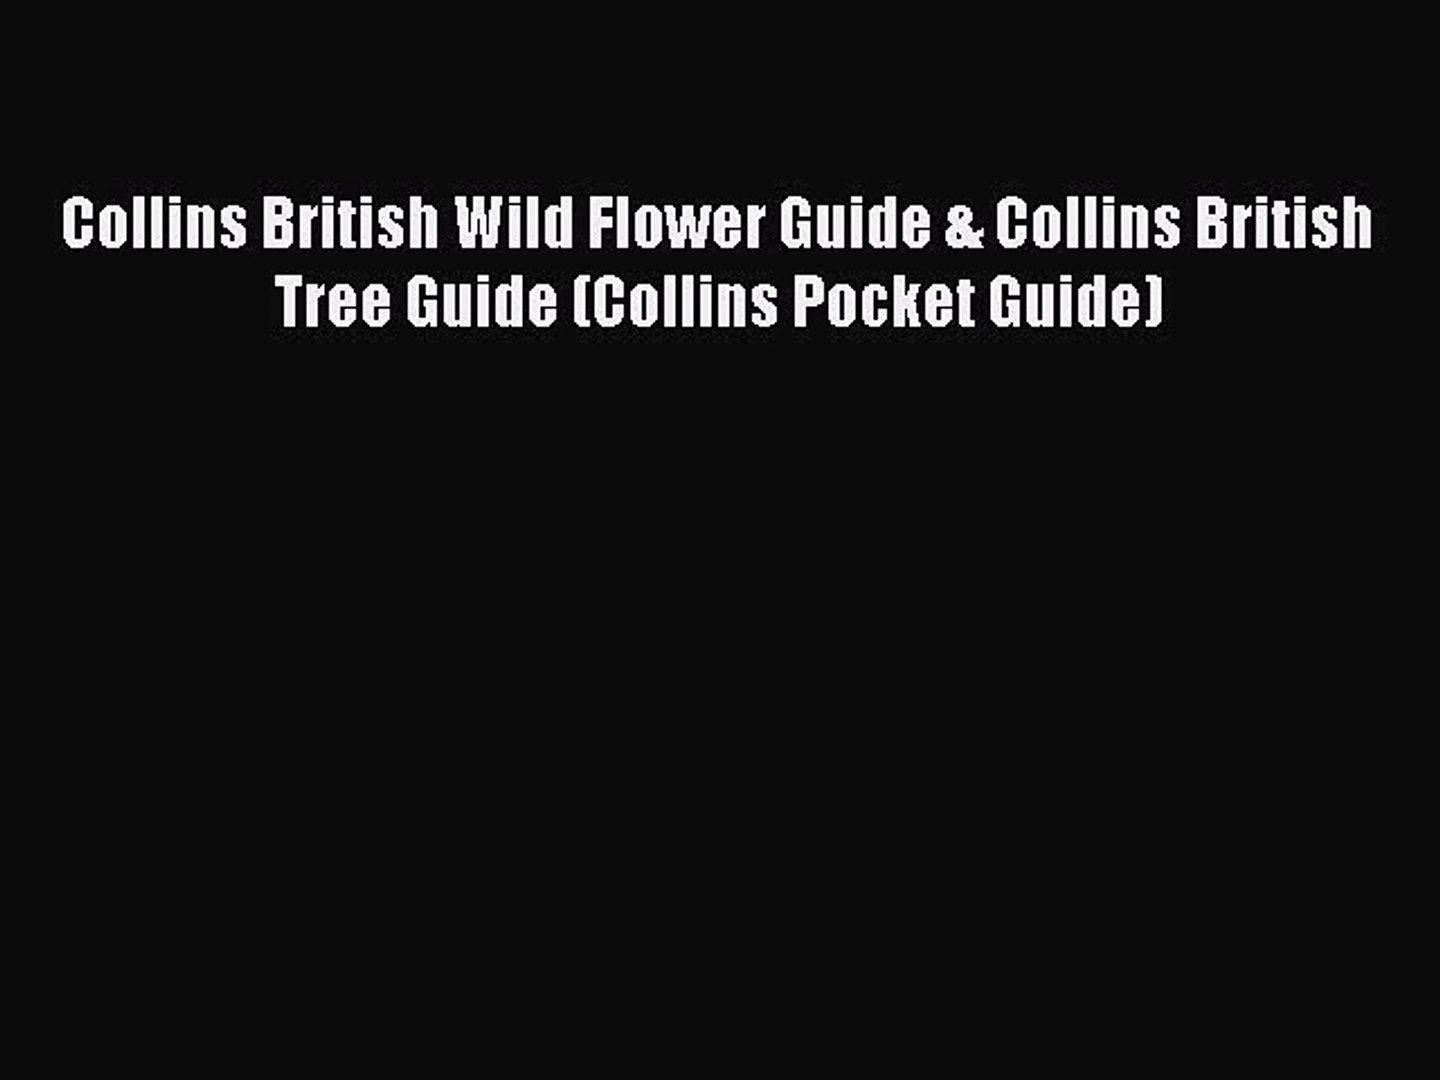 Collins British Wild Flower Guide & Collins British Tree Guide (Collins Pocket Guide) Free